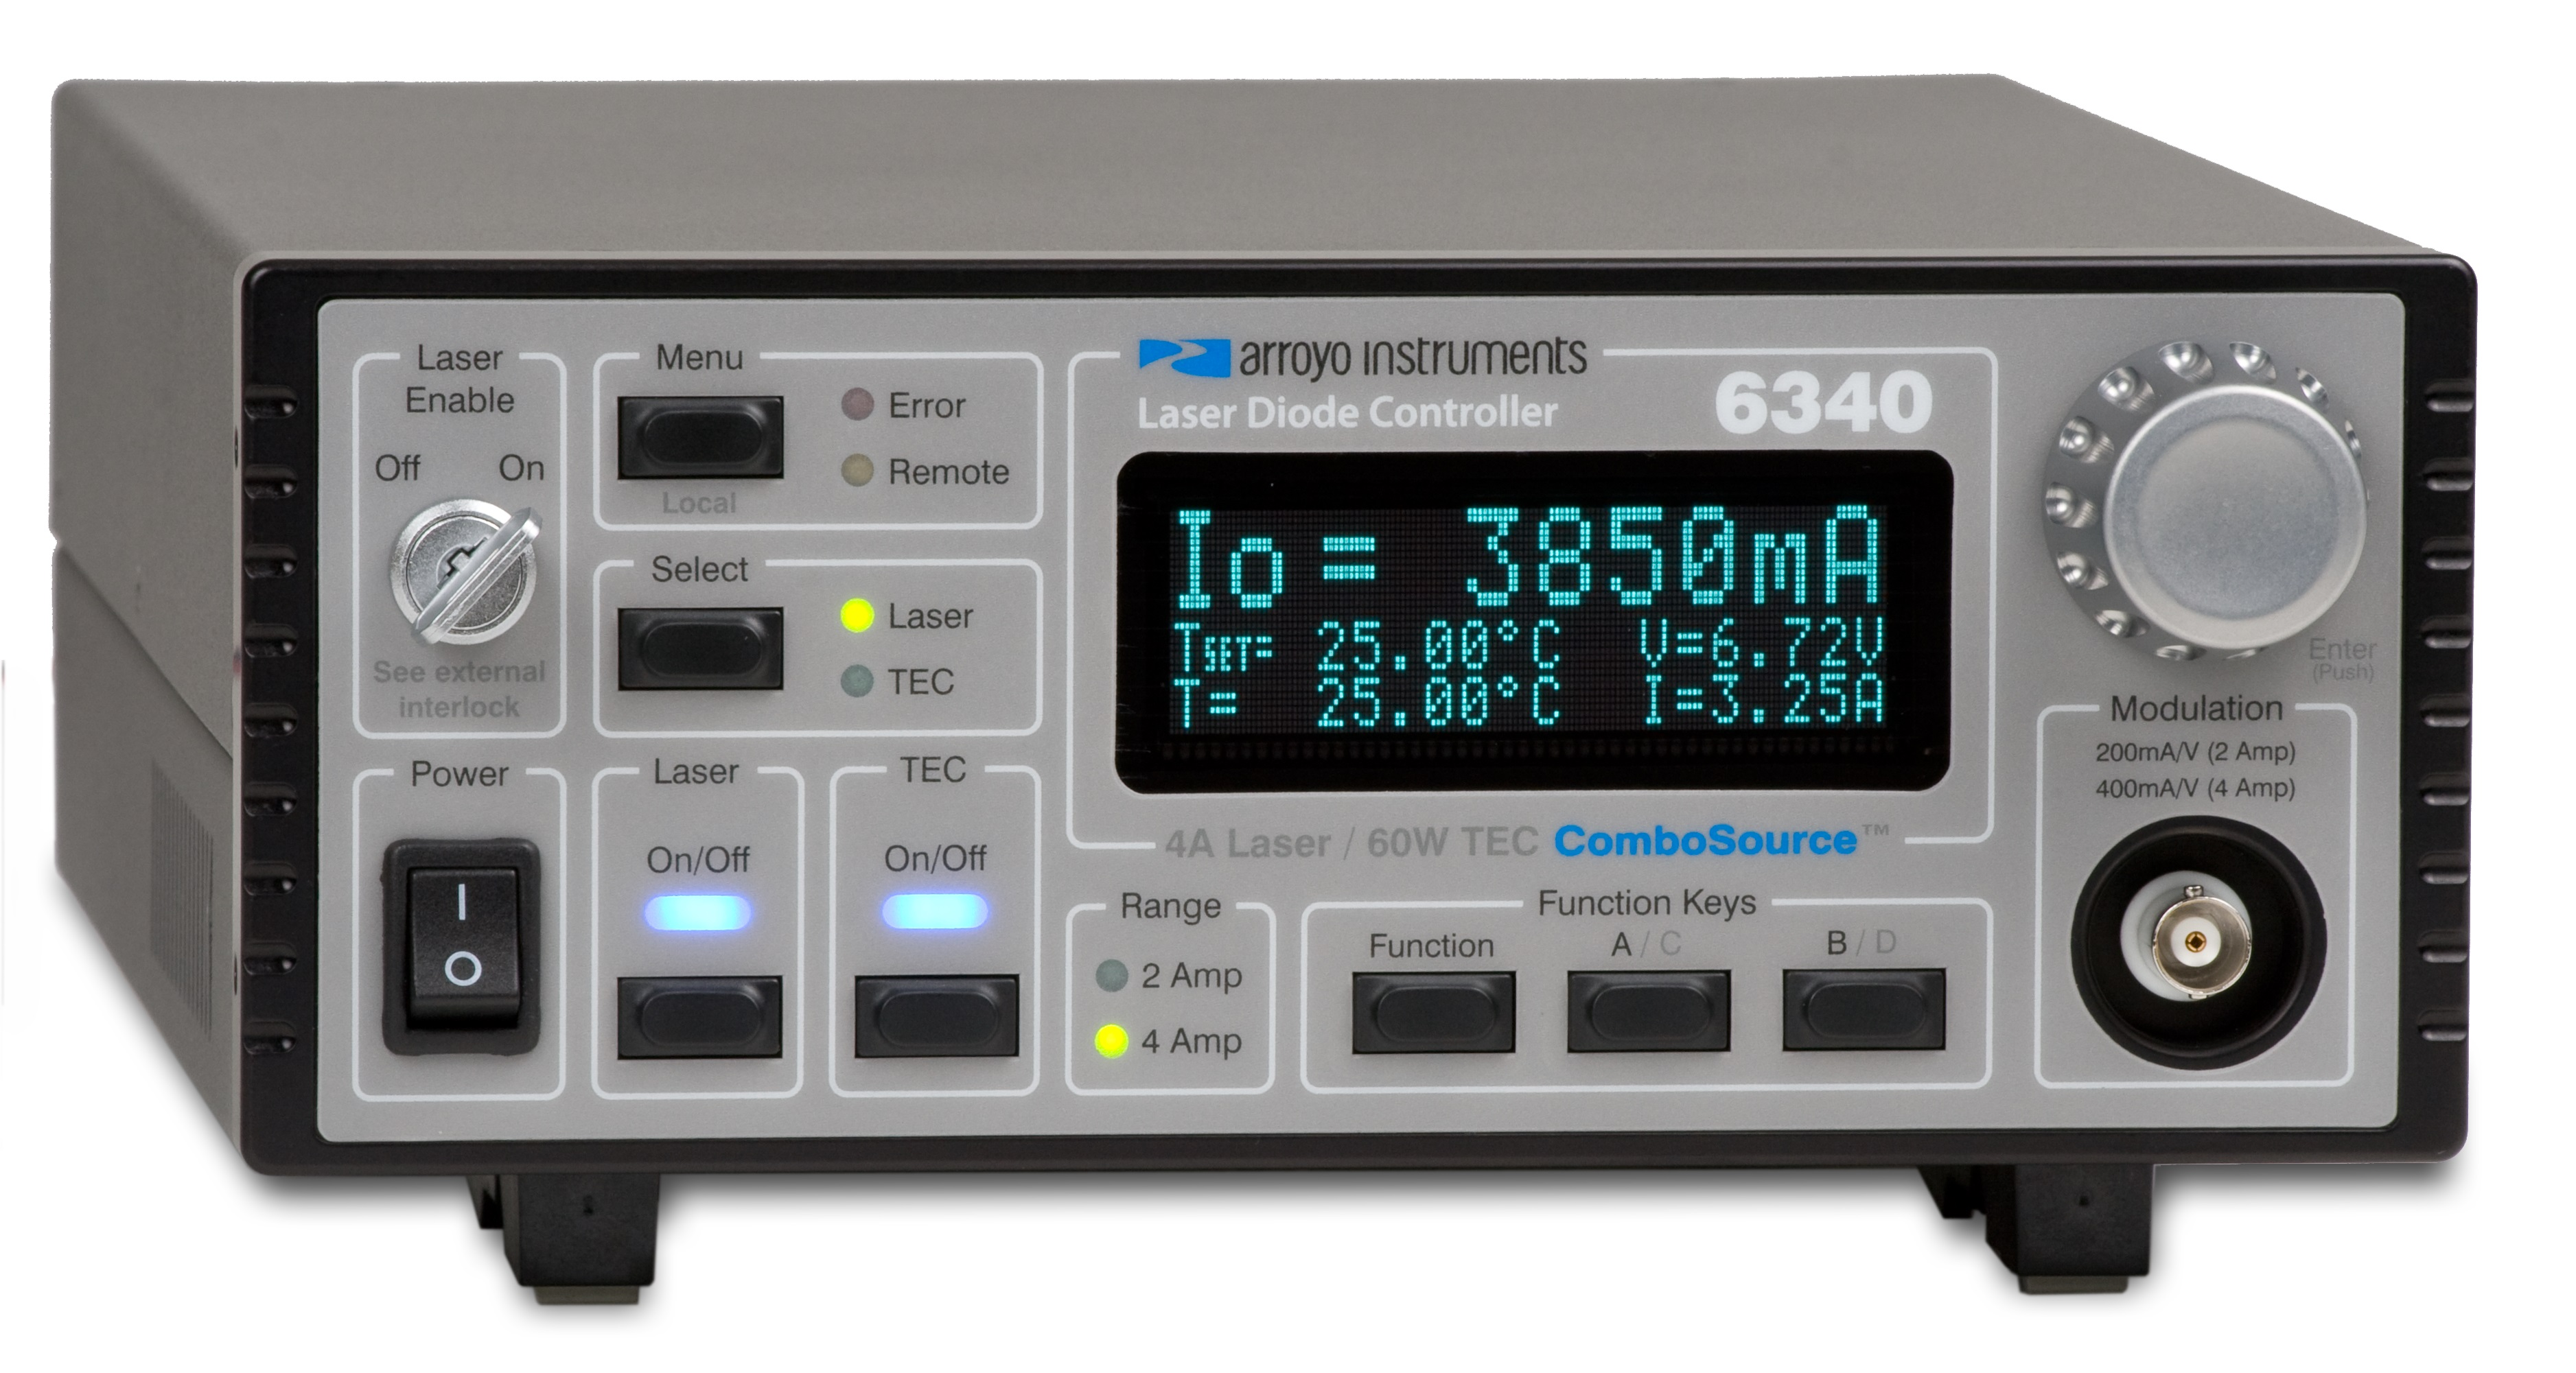 Arroyo 6300 combo Laser Diode Driver and TEC controller